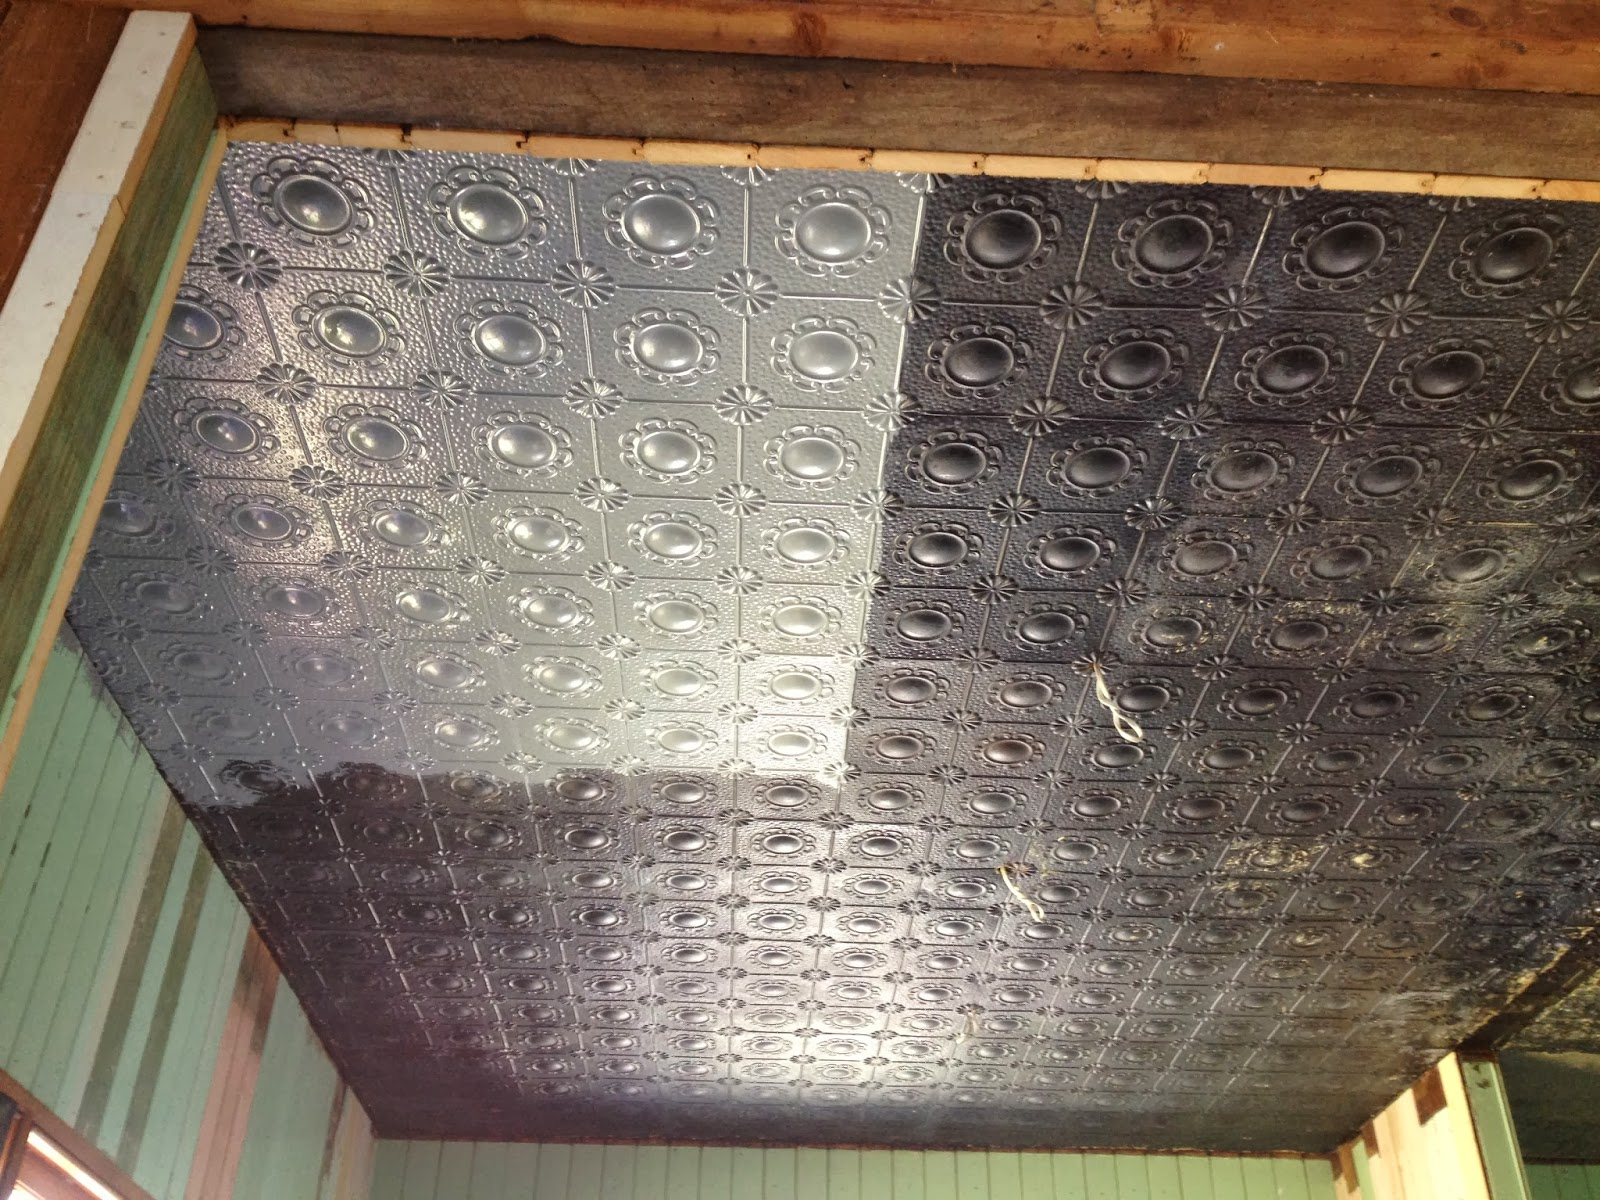 The old post office pressed metal ceiling restoration pt 2 pressed metal ceiling restoration pt 2 dailygadgetfo Image collections